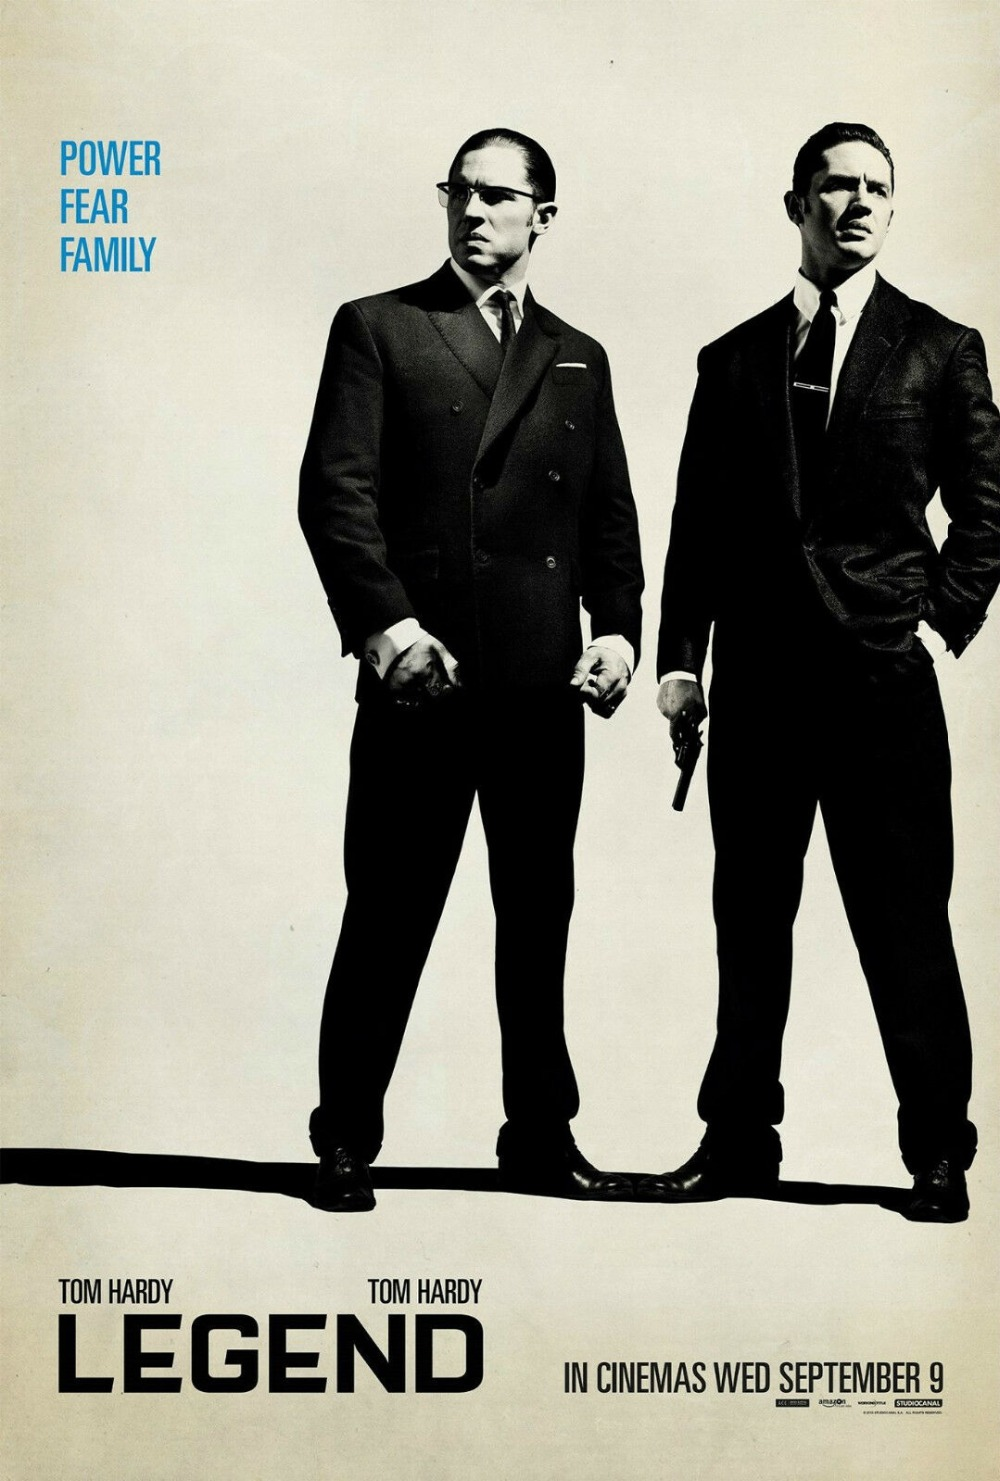 LEGEND MOVIE KRAYS/TOM HARDY/<font><b>GANGSTERS</b></font> SILK <font><b>POSTER</b></font> Wall painting 24x36inch image